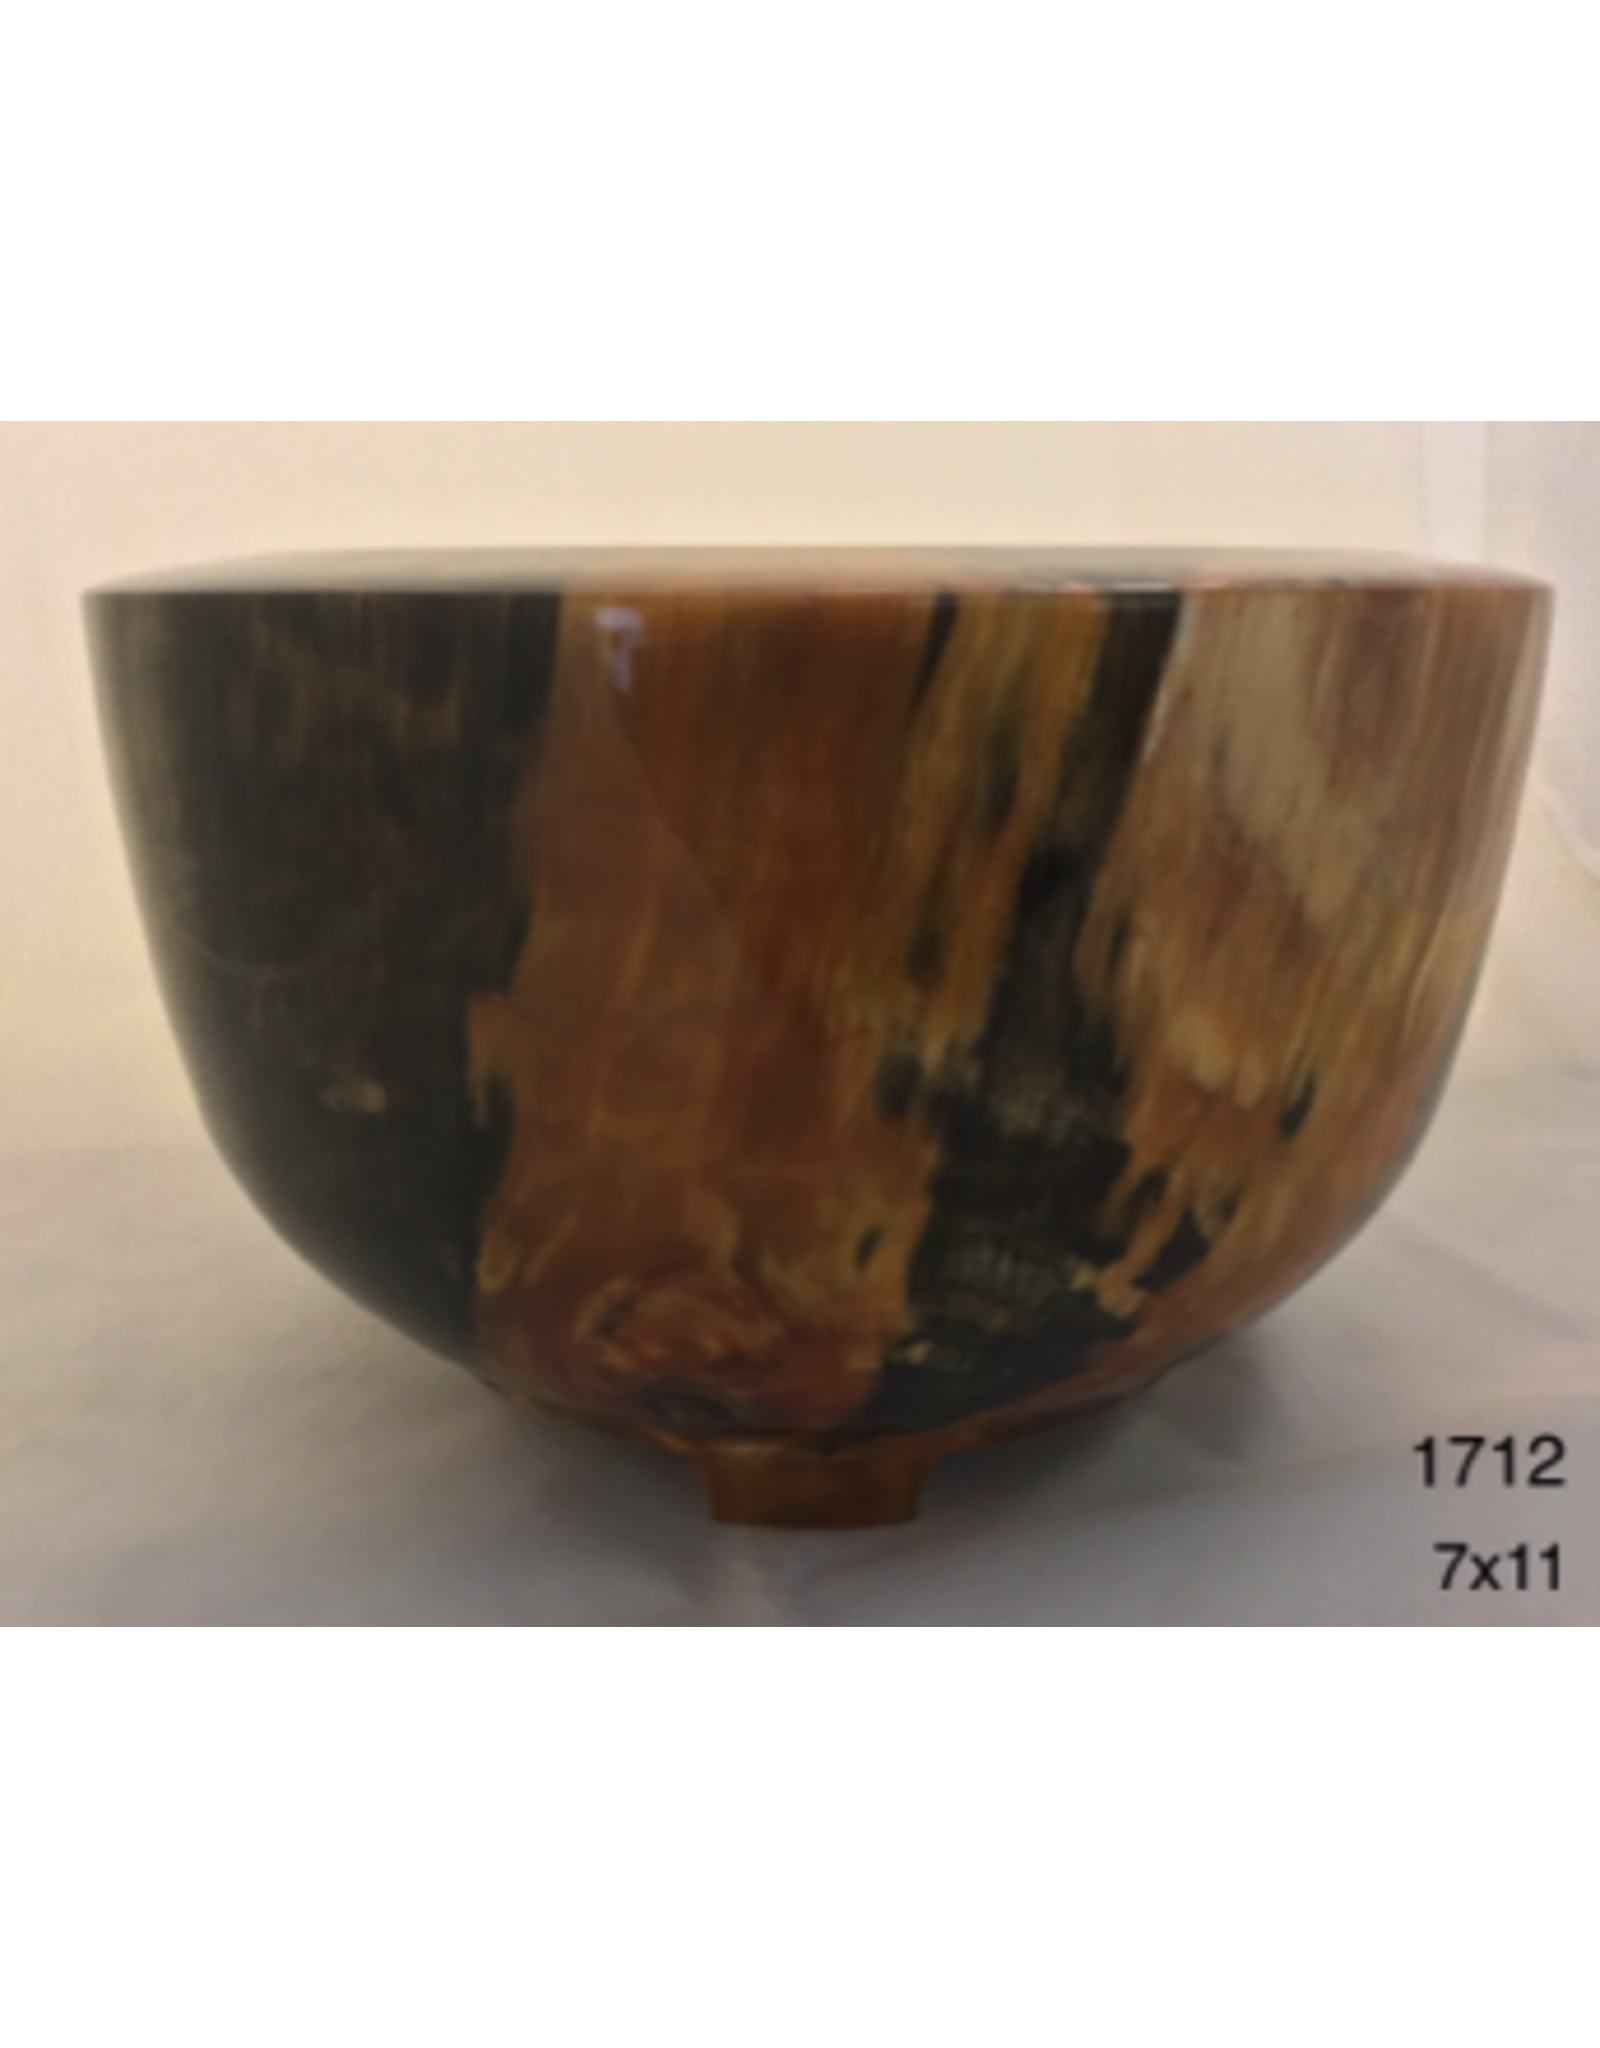 Joe Montagnino BOWL (w/Feet, Norfolk Island Pine, #1712)